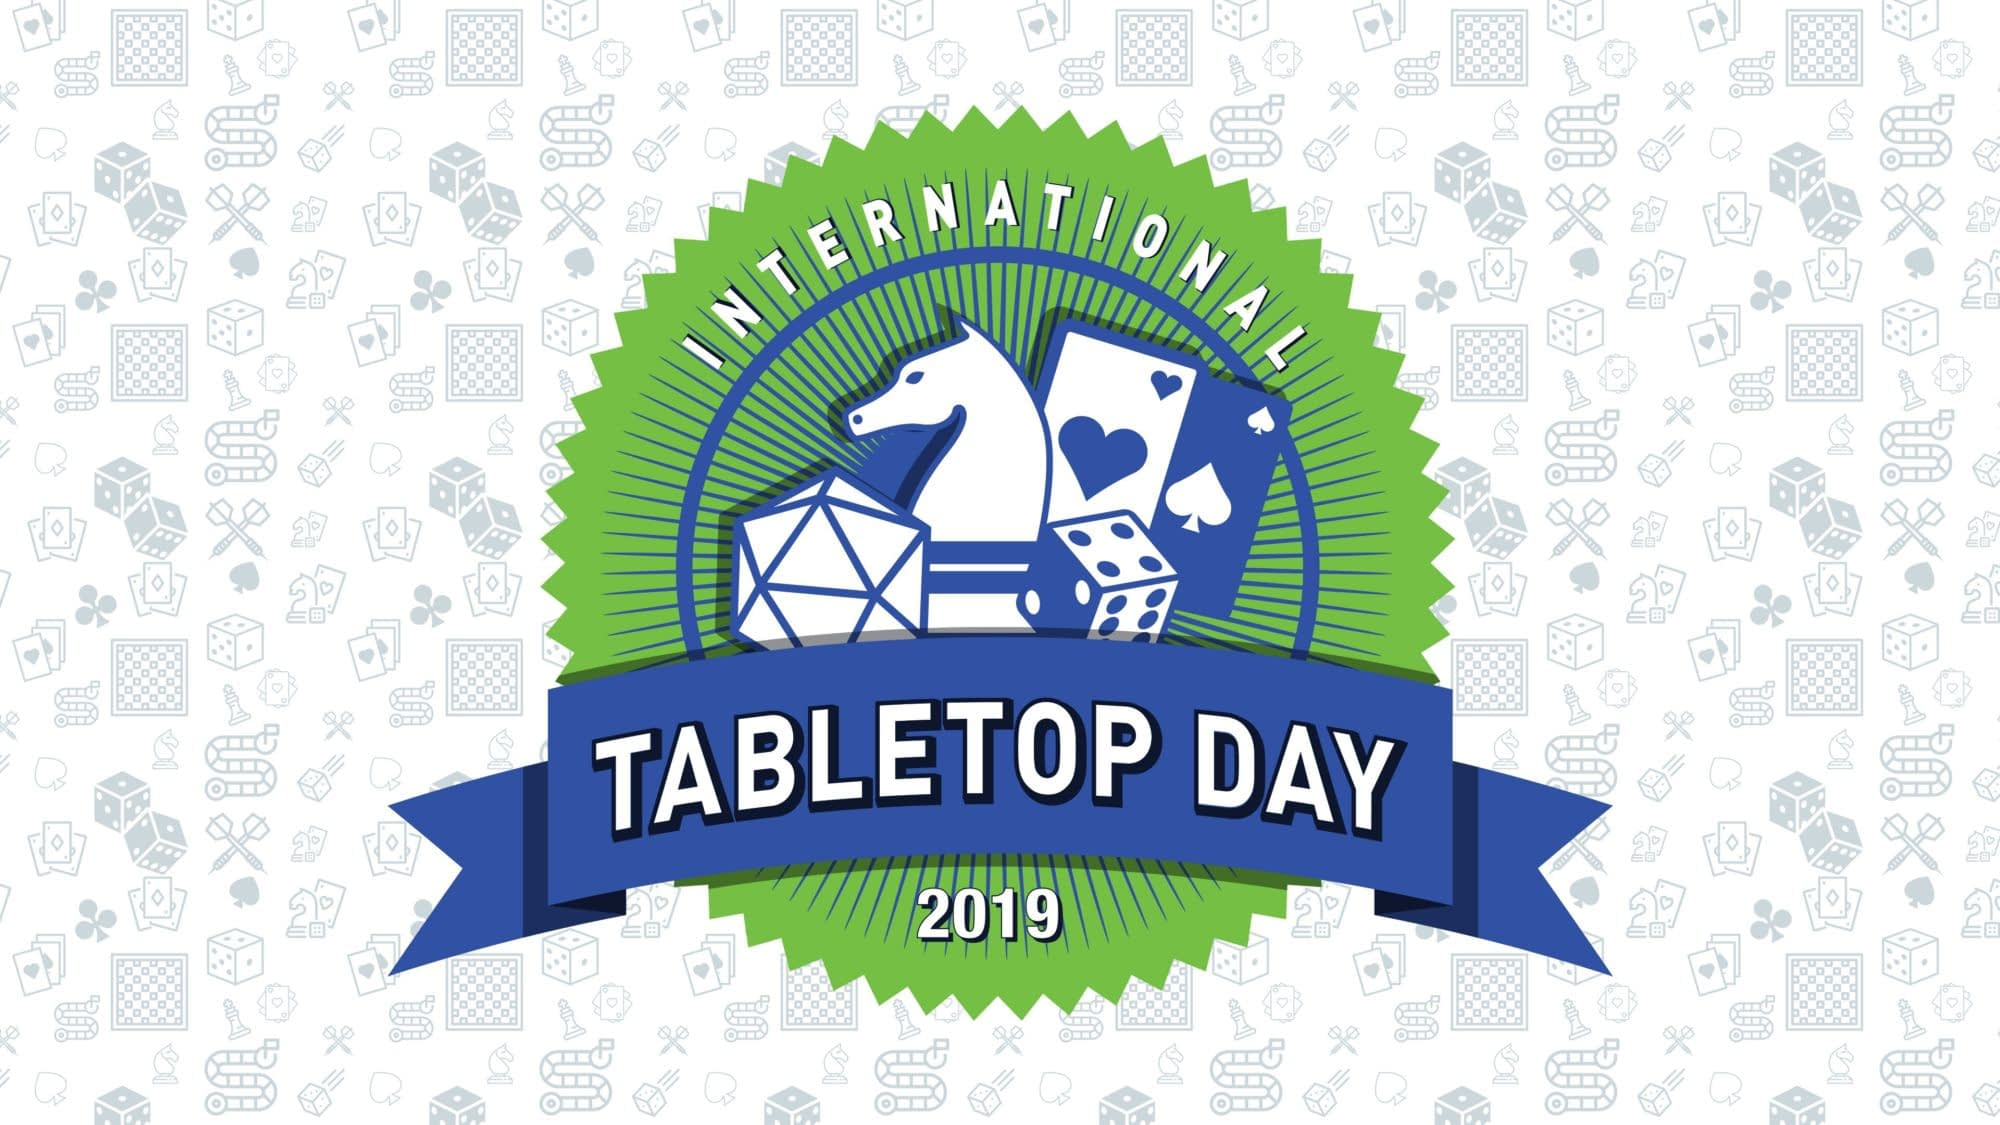 Celebrate International Table Top Day with Geek and Sundry!